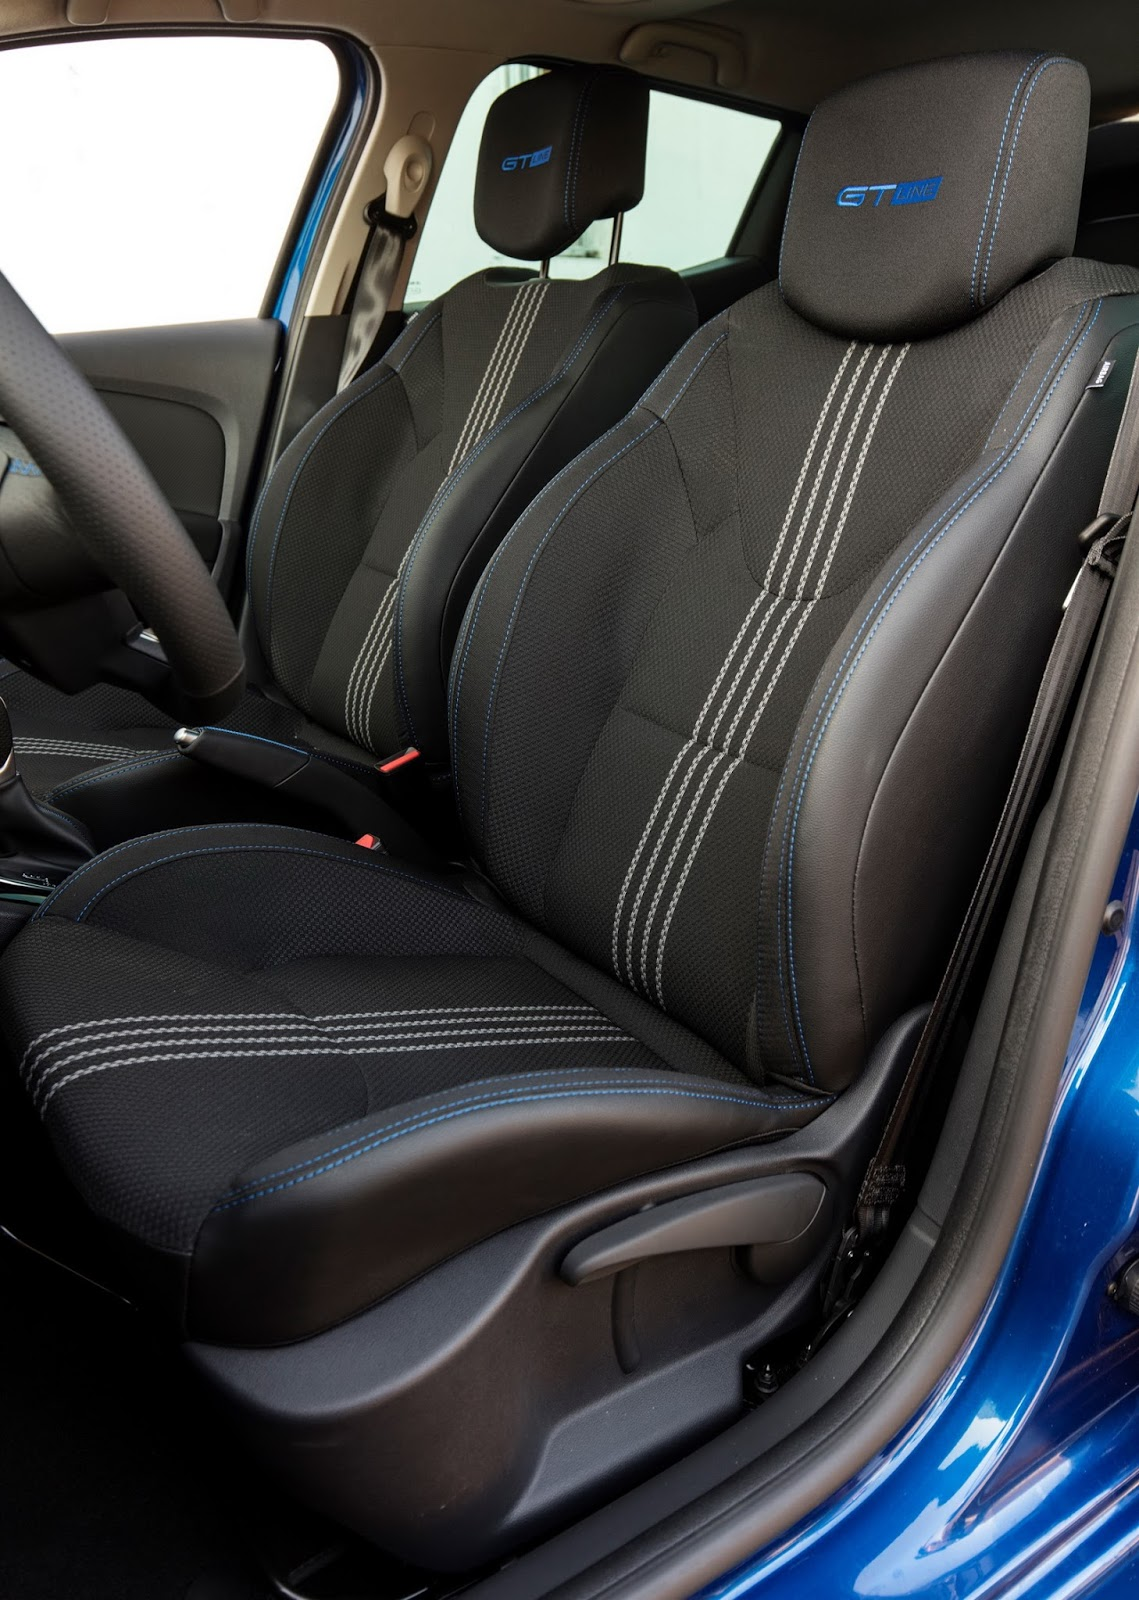 Renault drops more images of the updated clio carscoops Interieur clio 4